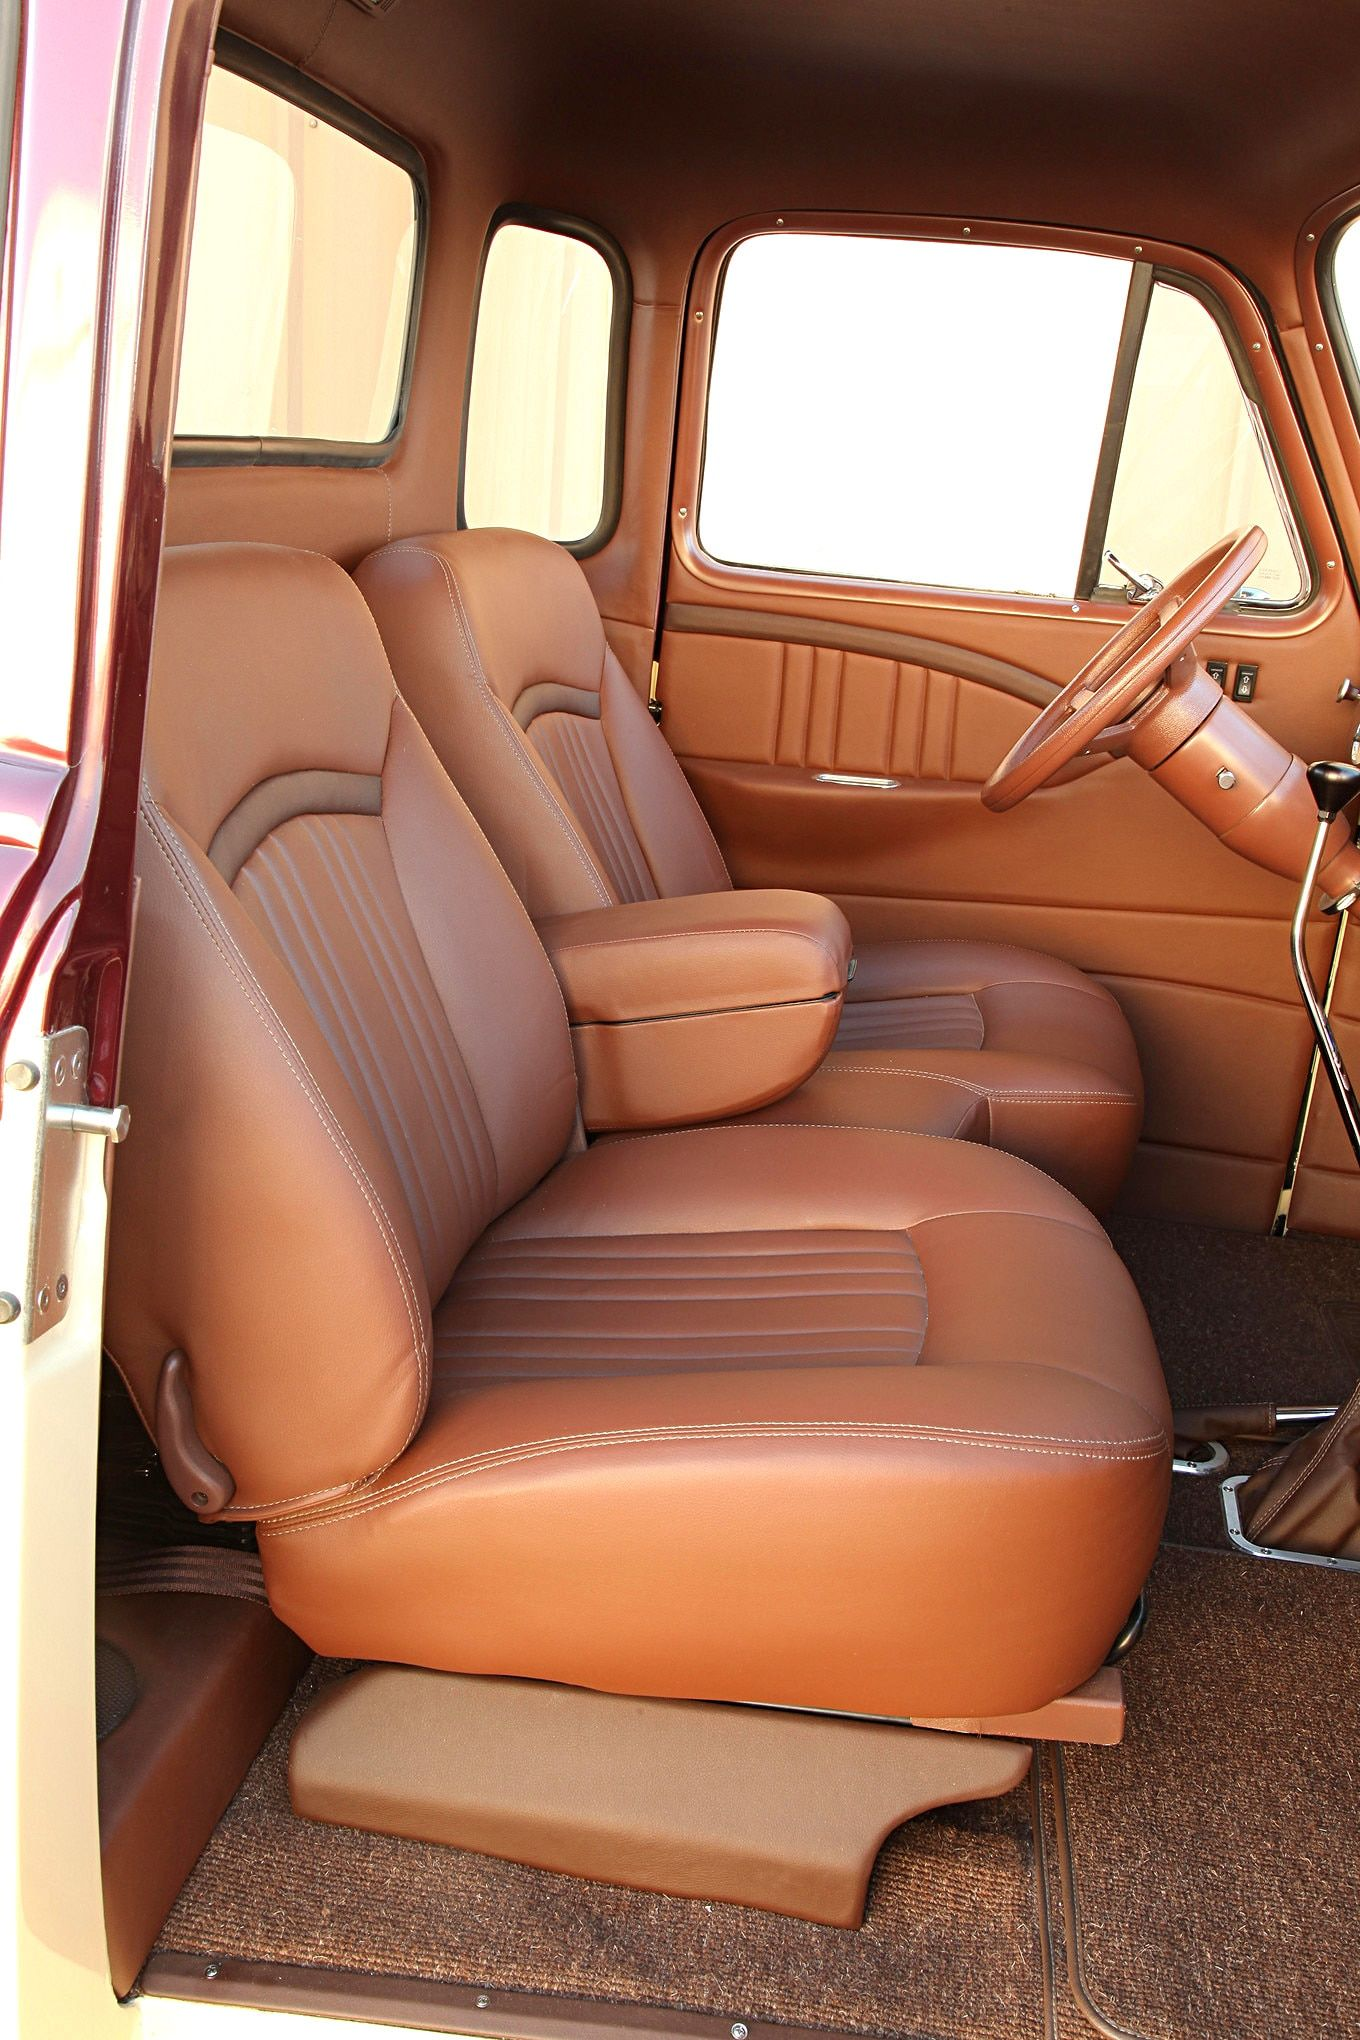 As It Turned Out Danny S Newly Acquired 1951 Chevrolet 3100 Was In Pretty Rough Shape And He Needed The Other Chevy Trucks Truck Interior Custom Car Interior